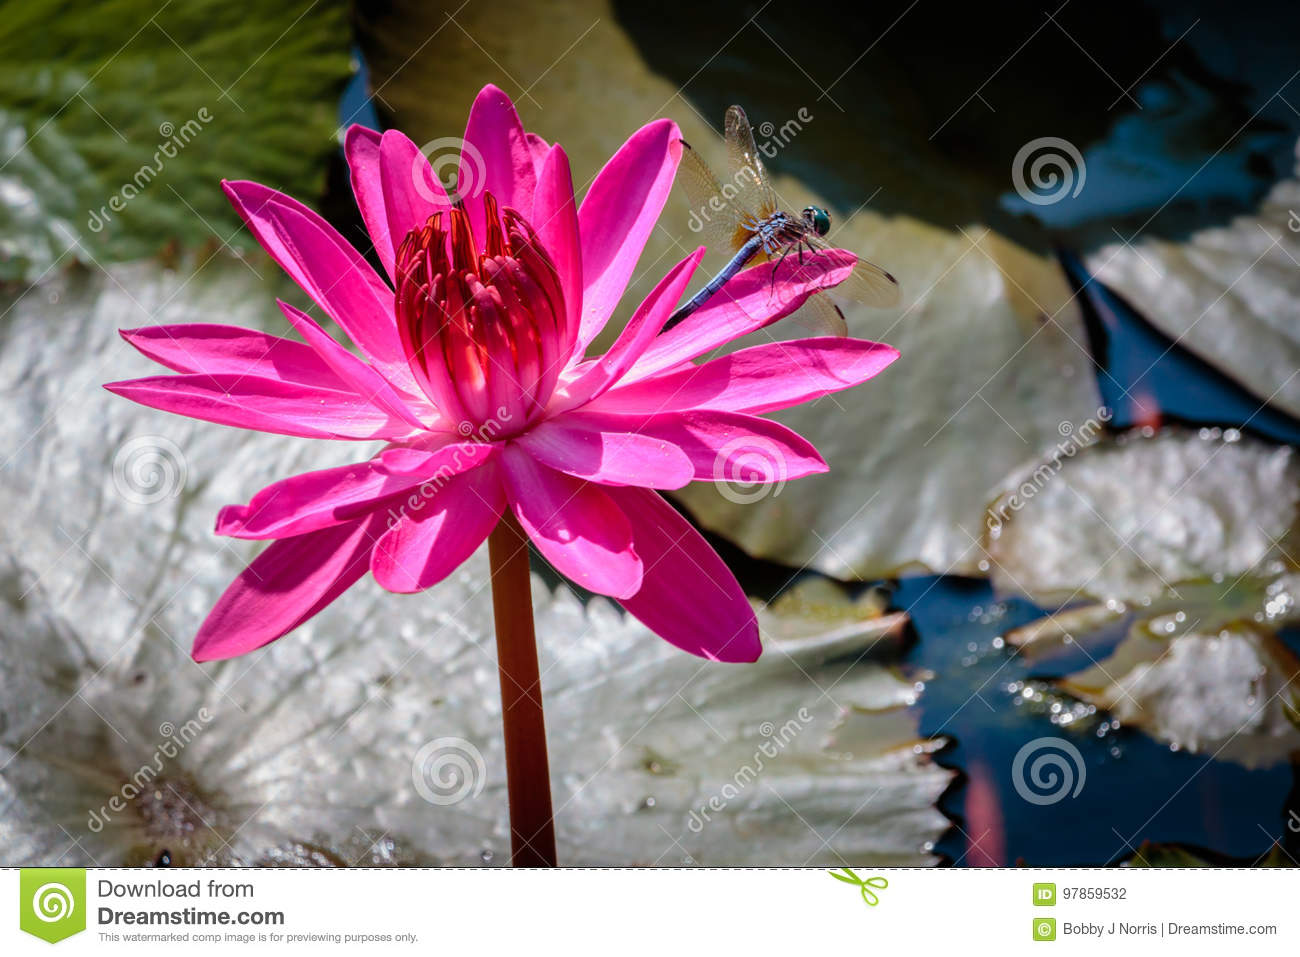 Dragon Lily Stock Photos Royalty Free Pictures